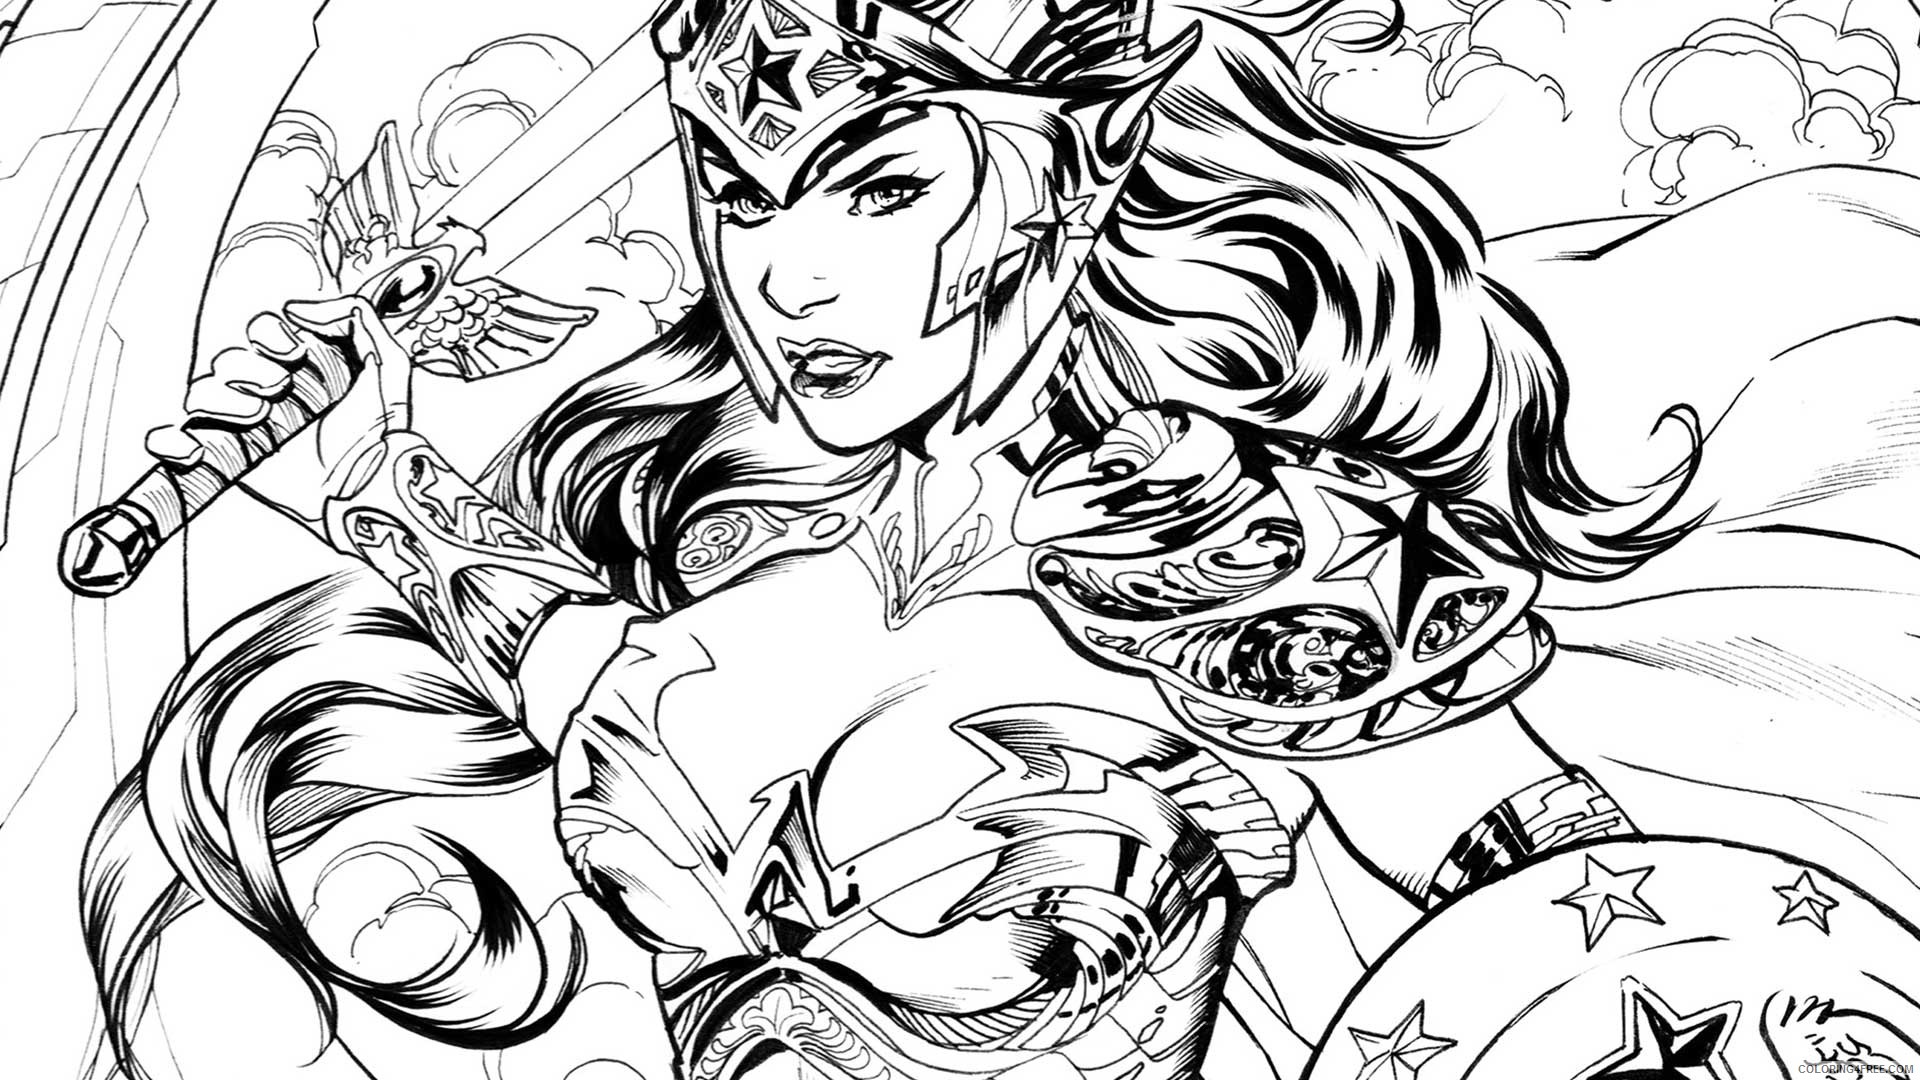 realistic wonder woman coloring pages for adults Coloring4free ...